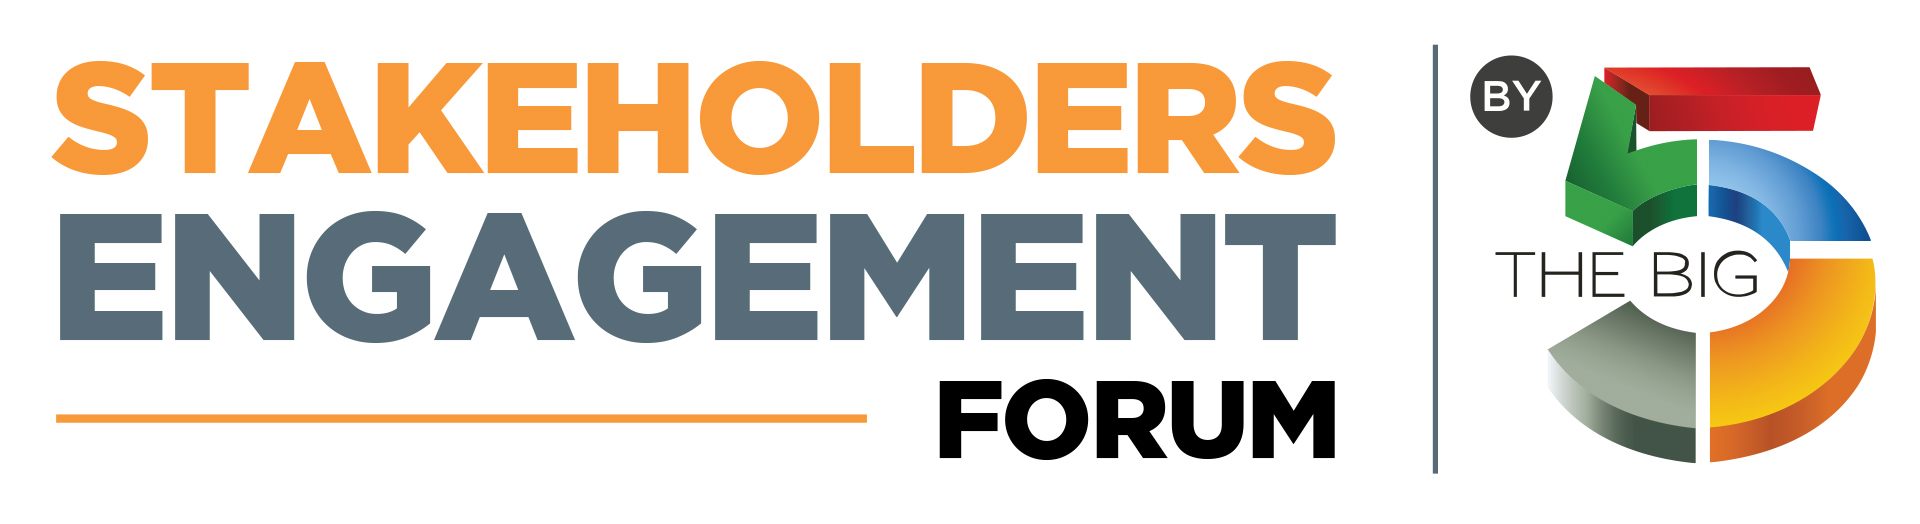 CCE-Stakeholder-Engagement-forum-Big-5-logo-2020